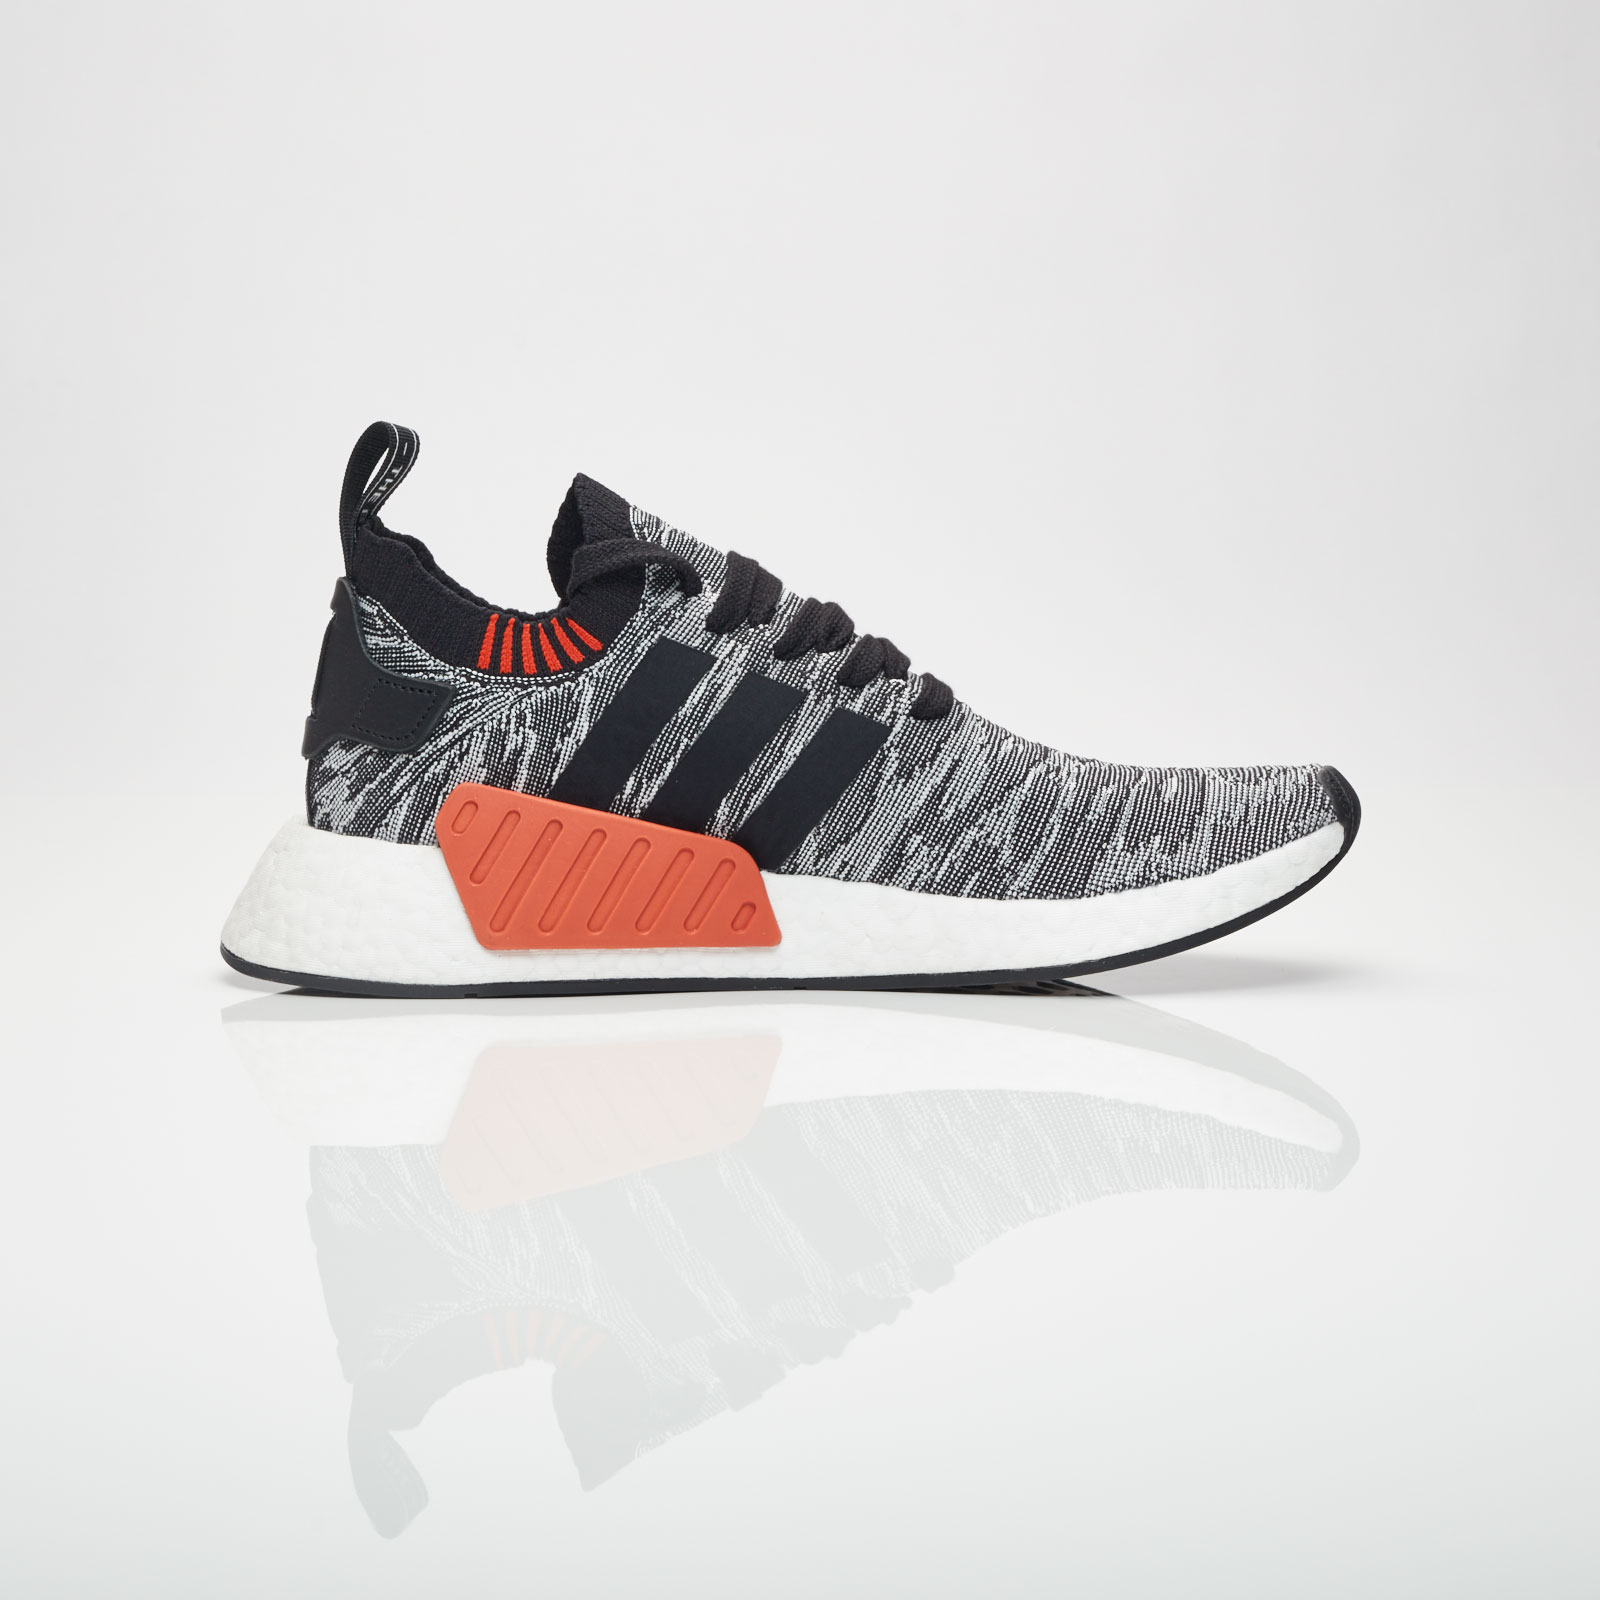 separation shoes e5744 b8bcb adidas NMD R2 PK - By9409 - Sneakersnstuff | sneakers ...